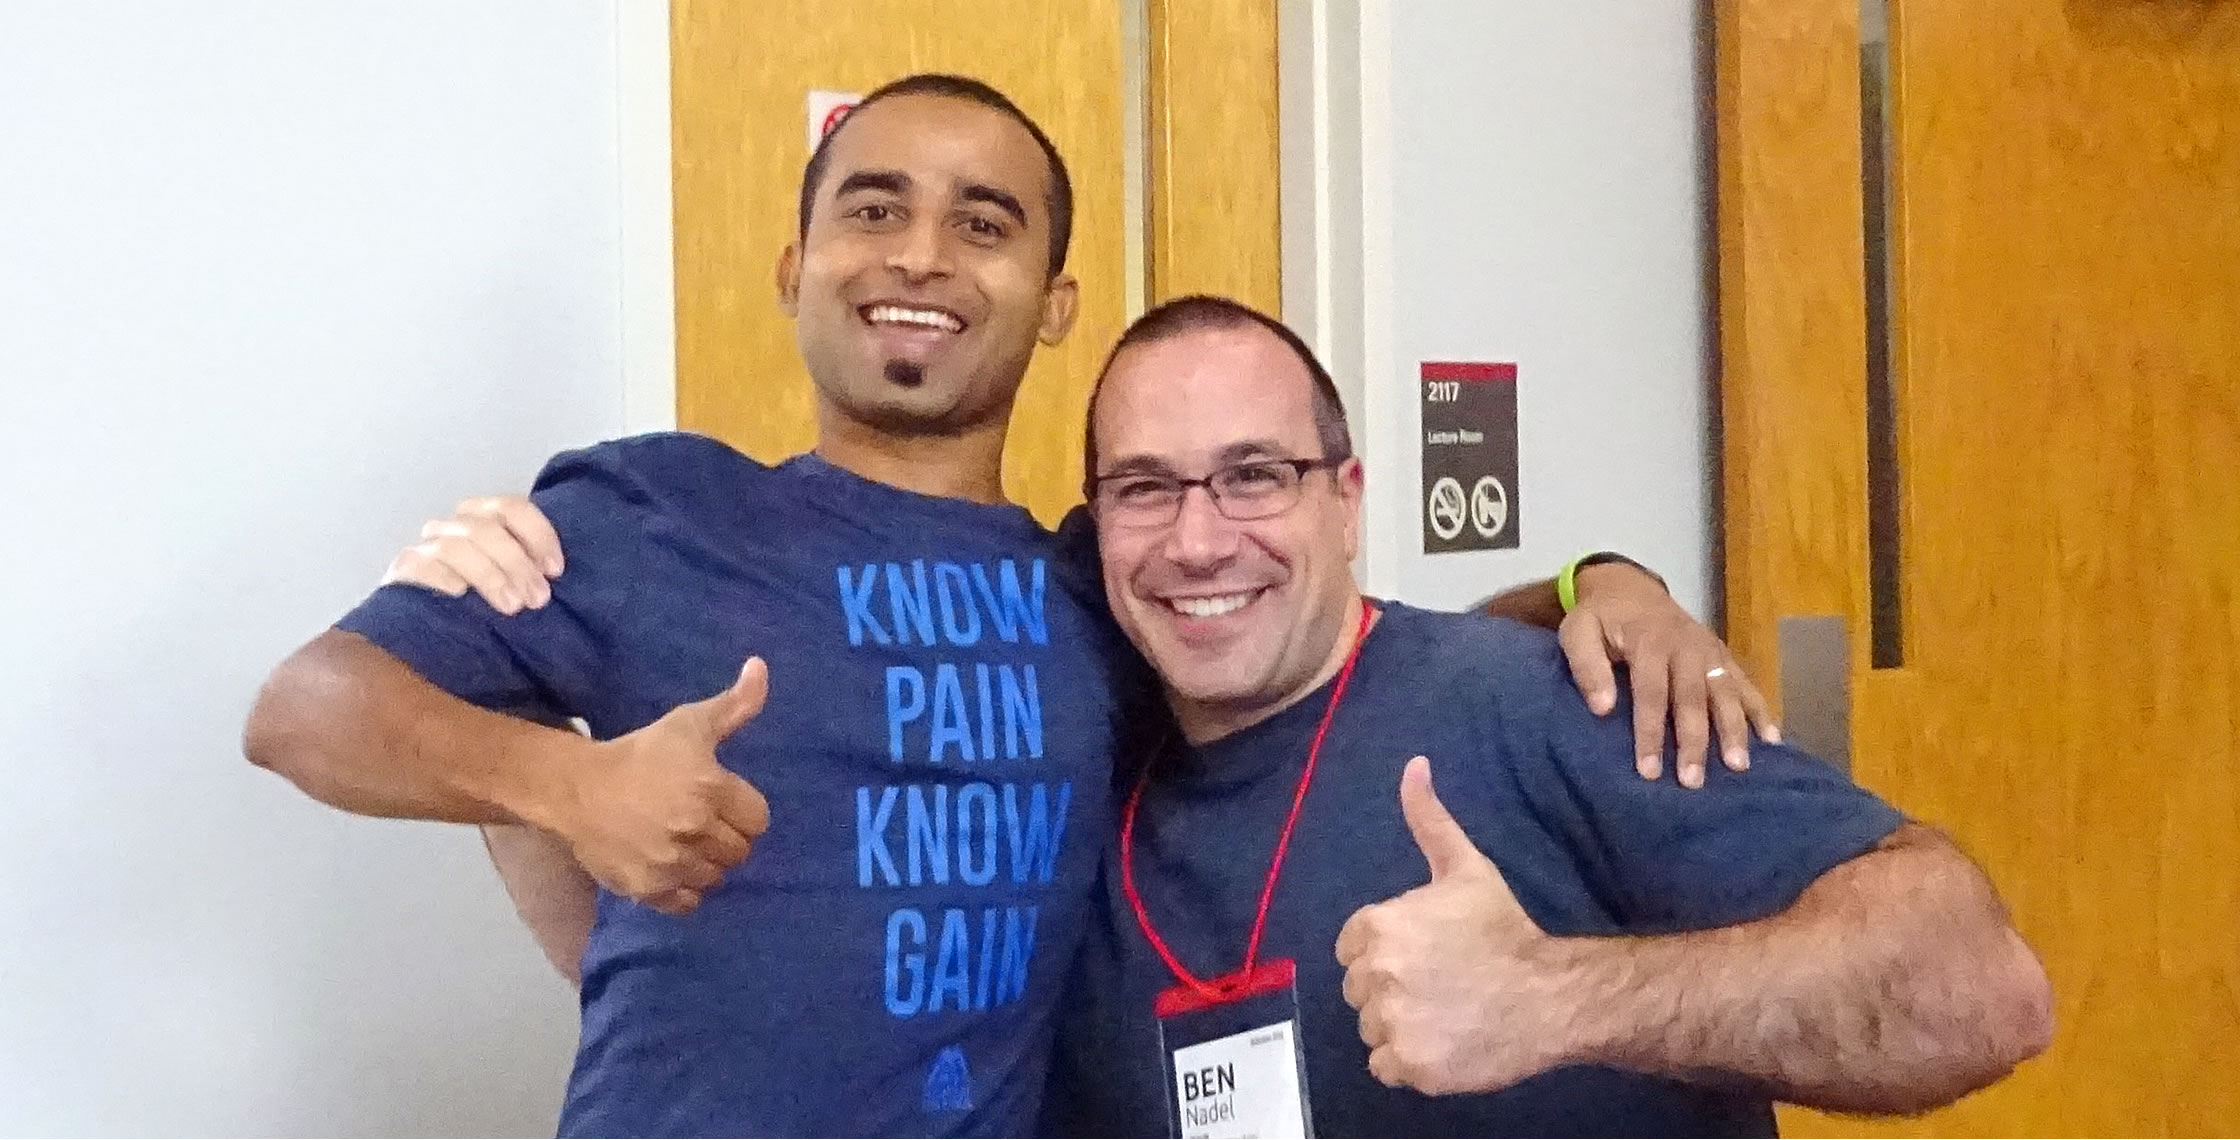 Ben Nadel at NCDevCon 2016 (Raleigh, NC) with: MD Khan